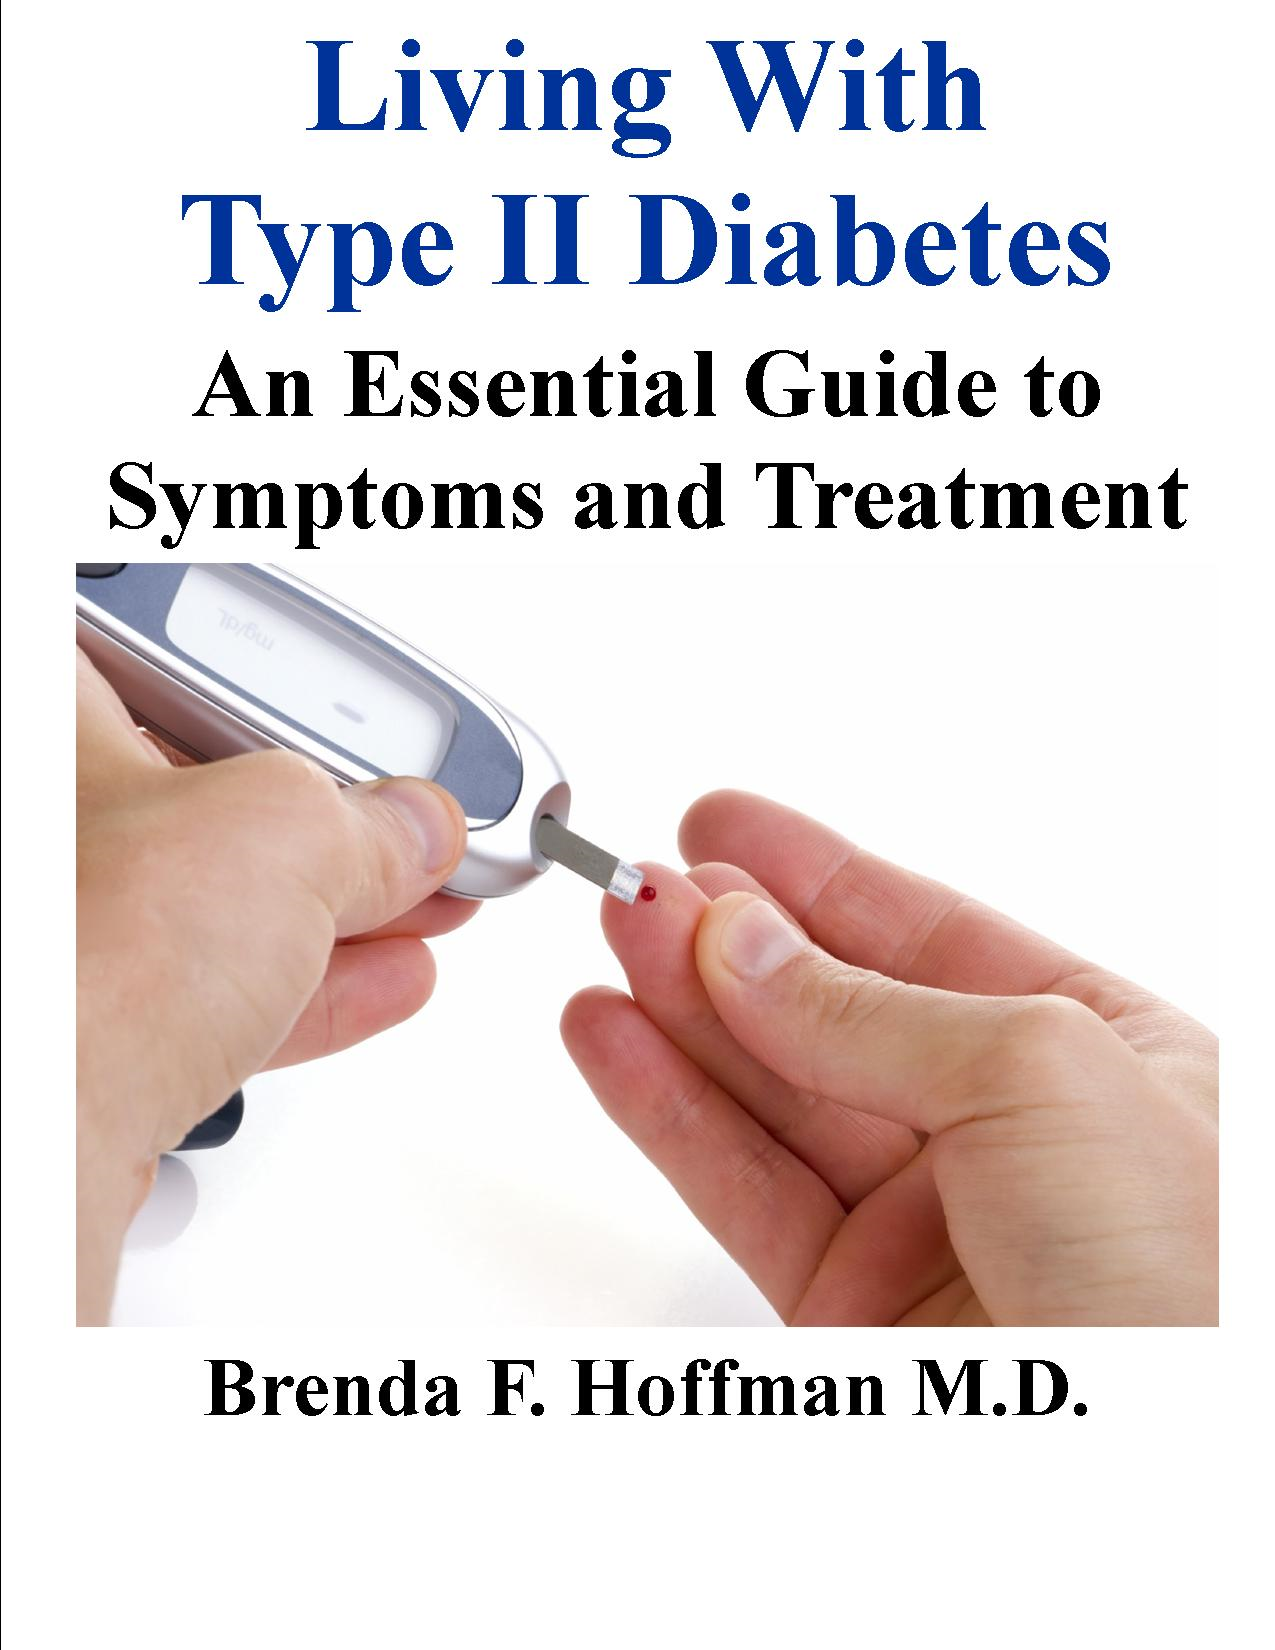 Living with Type 2 Diabetes: An Essential Guide to Symptoms and Treatment